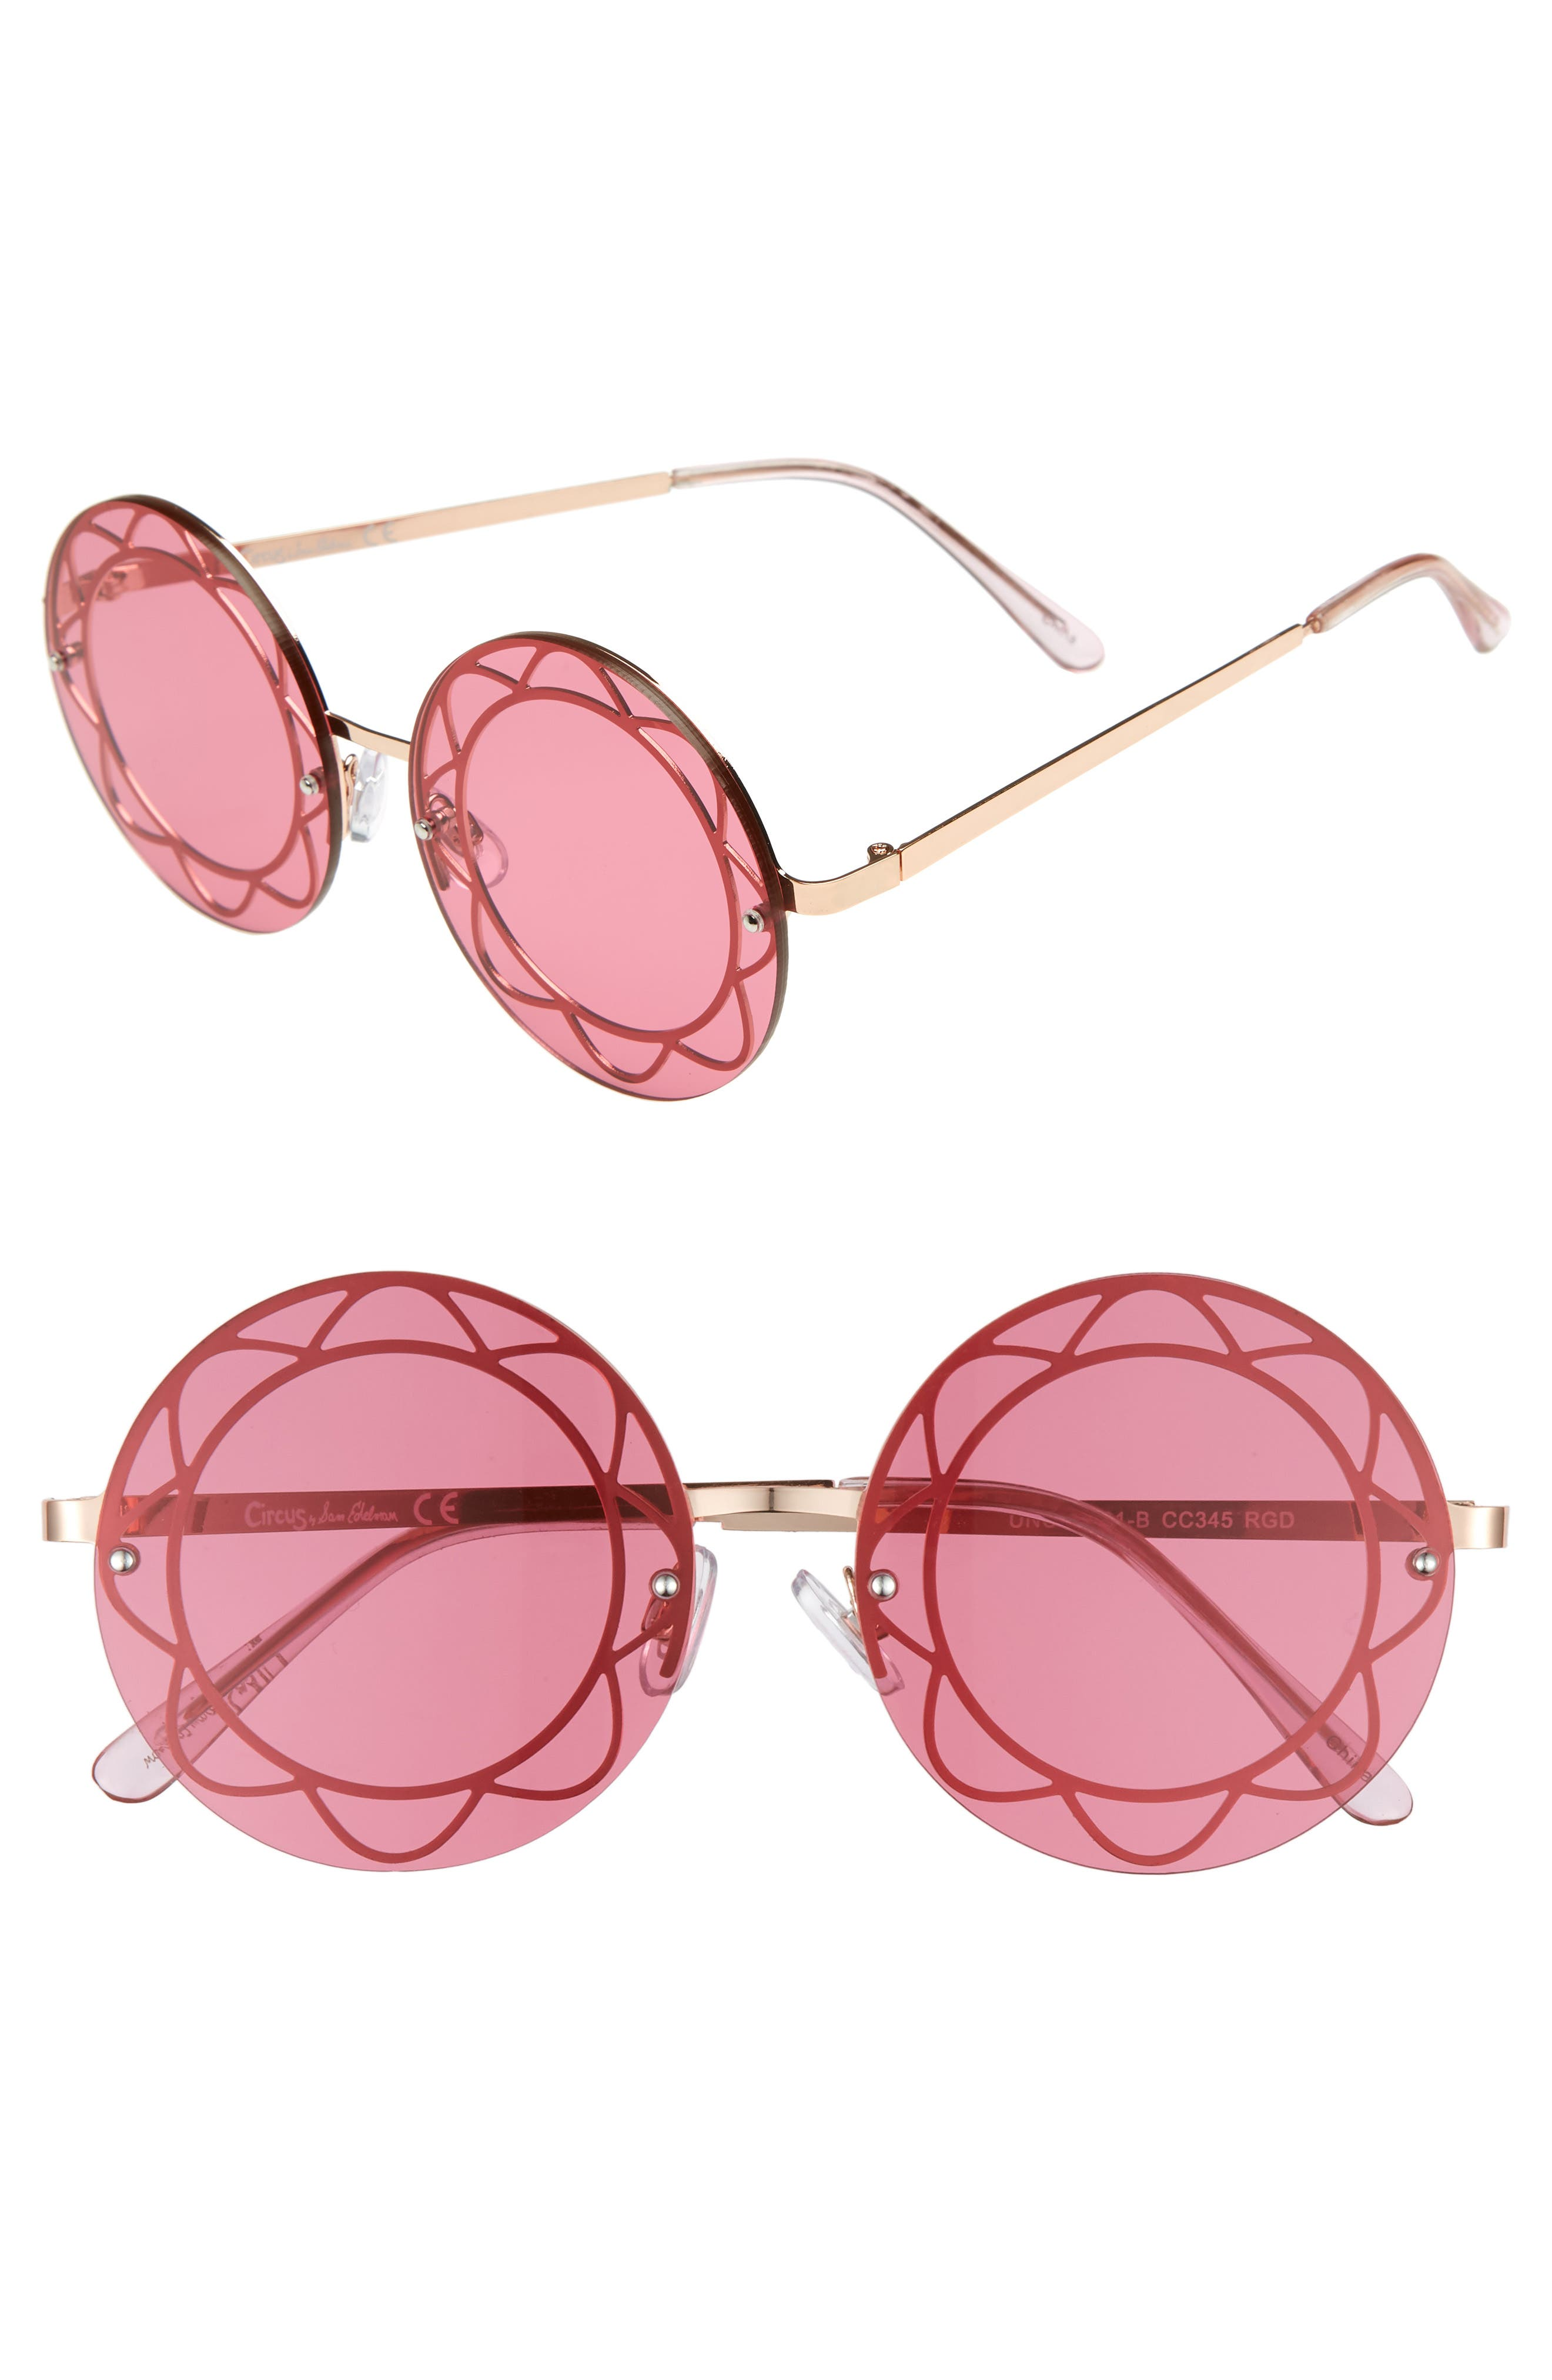 55mm Round Sunglasses,                         Main,                         color, Rose Gold/ Red Lens